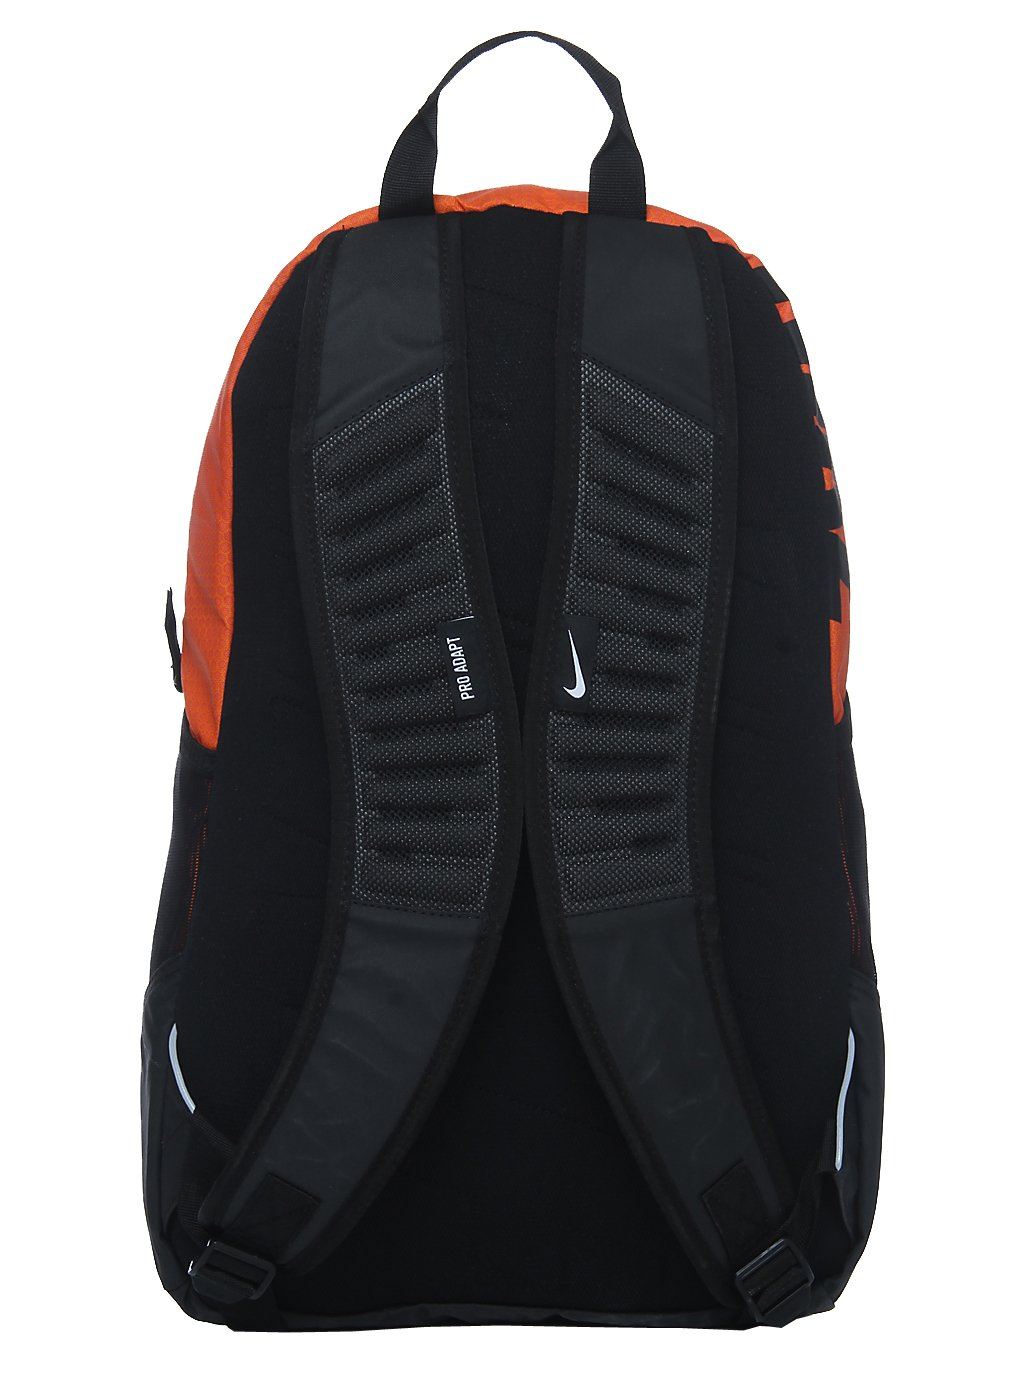 305aeee0f6 Orange Nike Mesh Backpack- Fenix Toulouse Handball